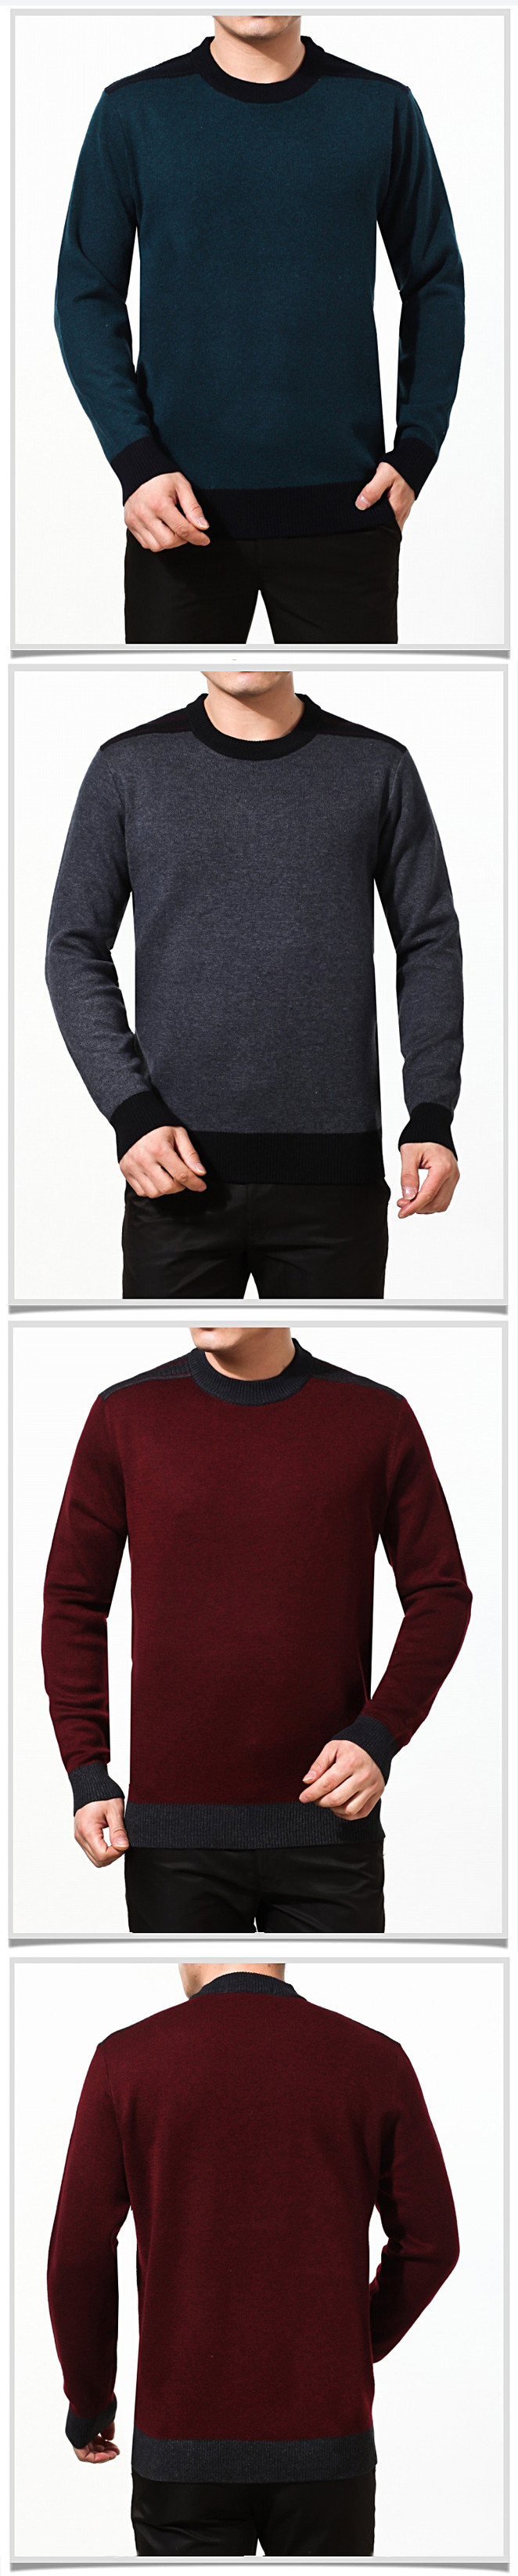 Men's Fashion Cashmere Sweater Pullovers Casual Solid Colors Crewneck Thick Pullover